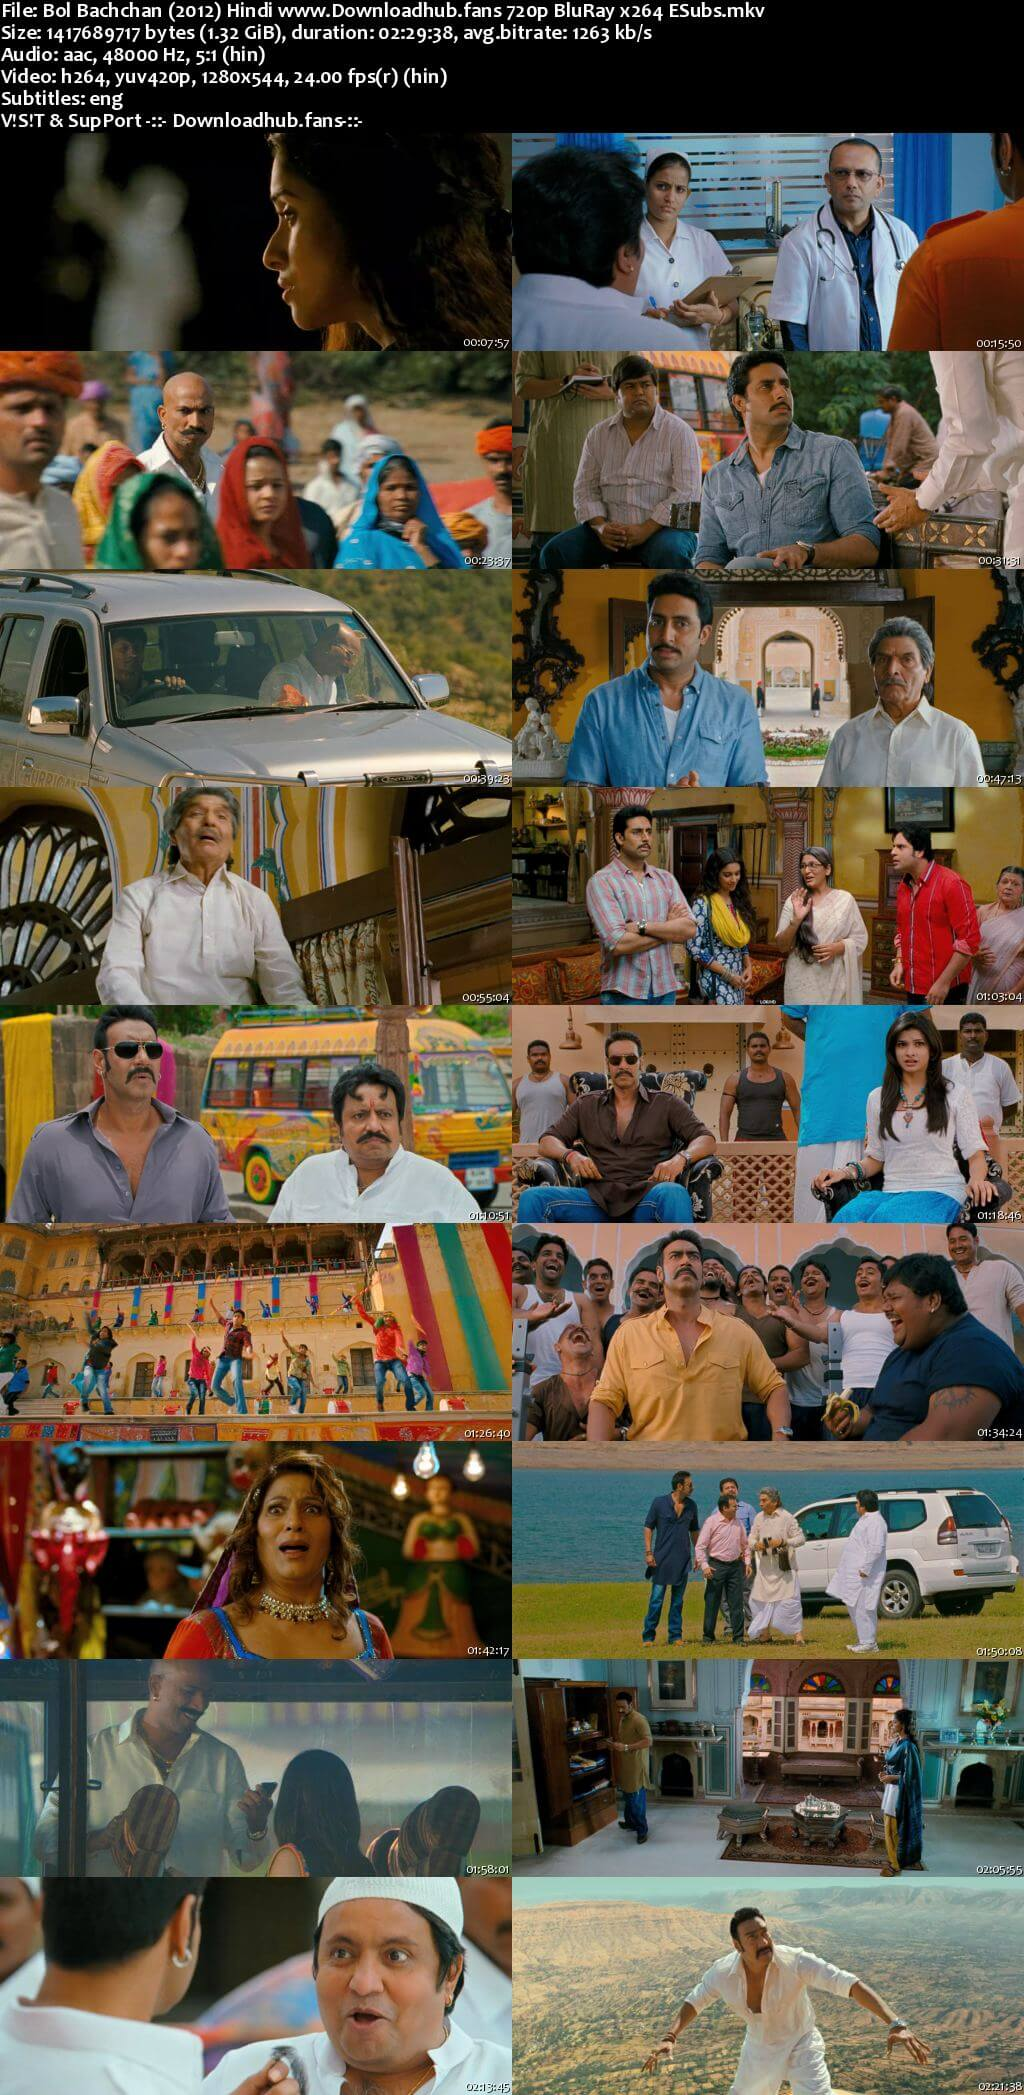 Bol Bachchan 2012 Hindi 720p BluRay ESubs